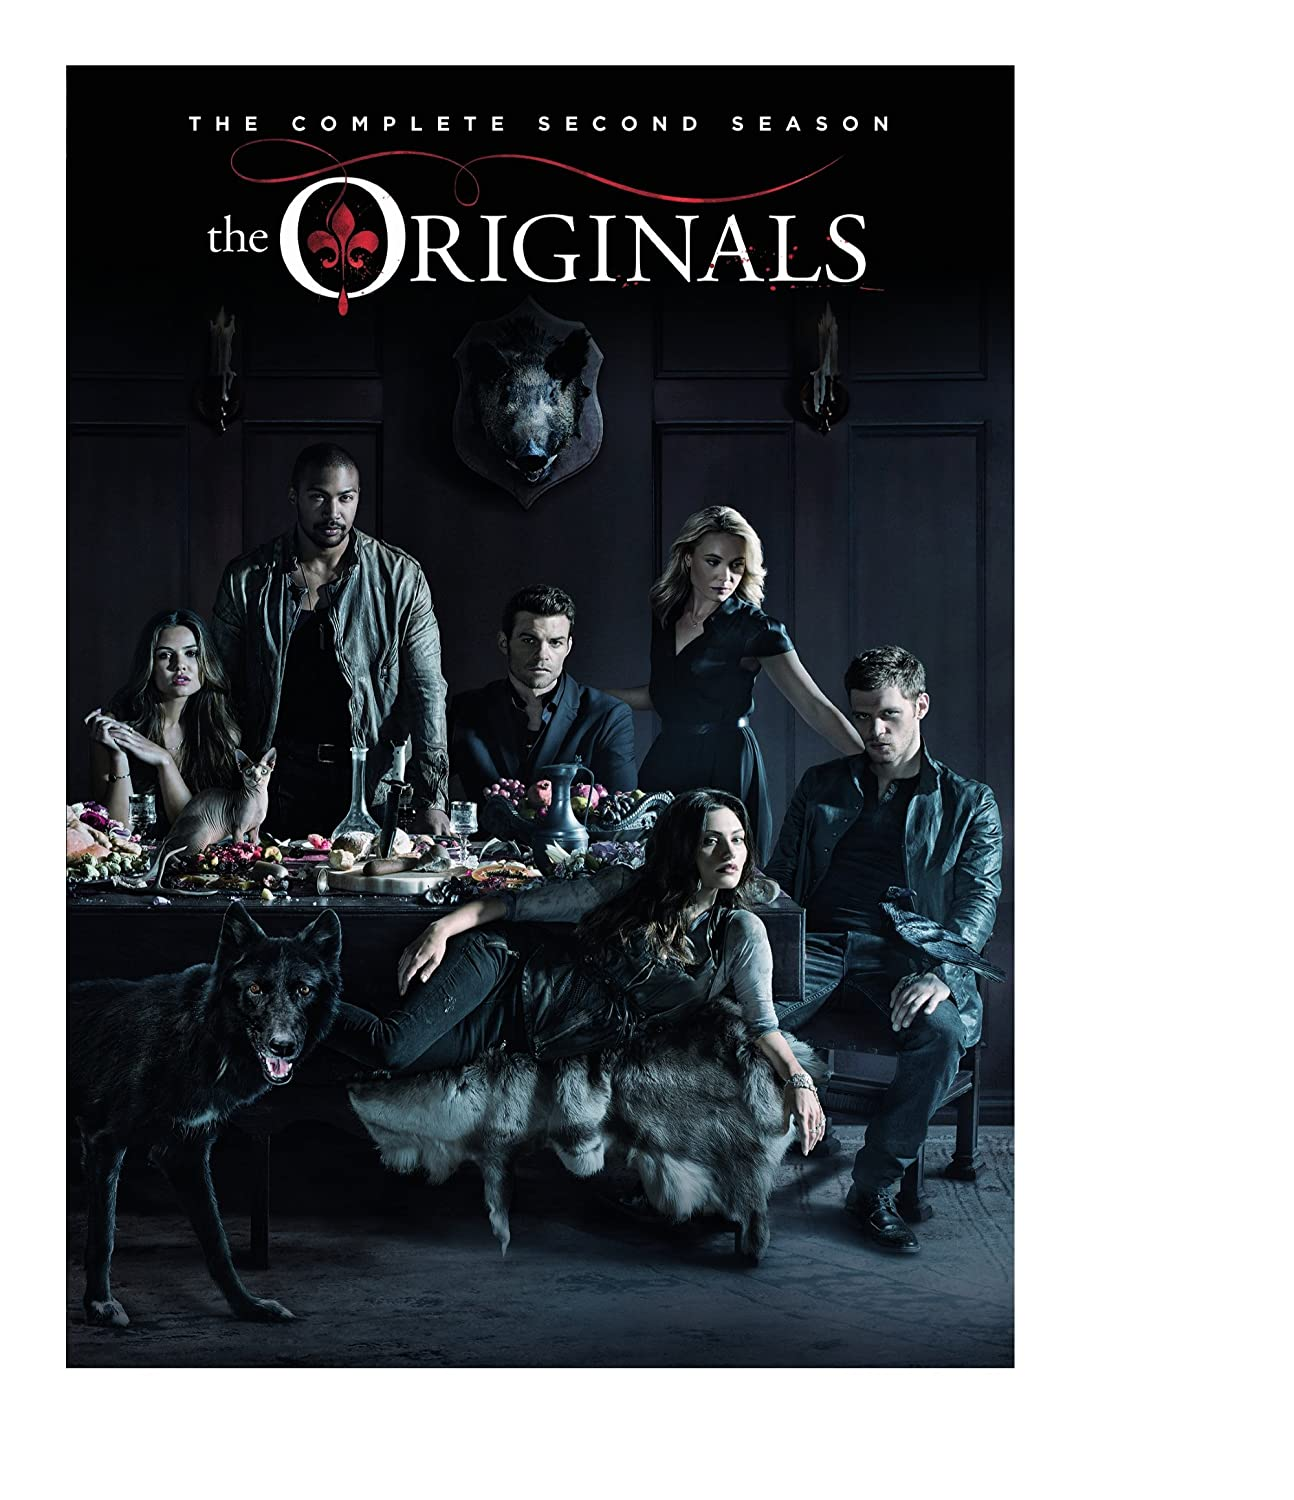 The Originals: Season 2 Julie Plec Leslie Morgenstein Joseph Morgan Daniel Gillies